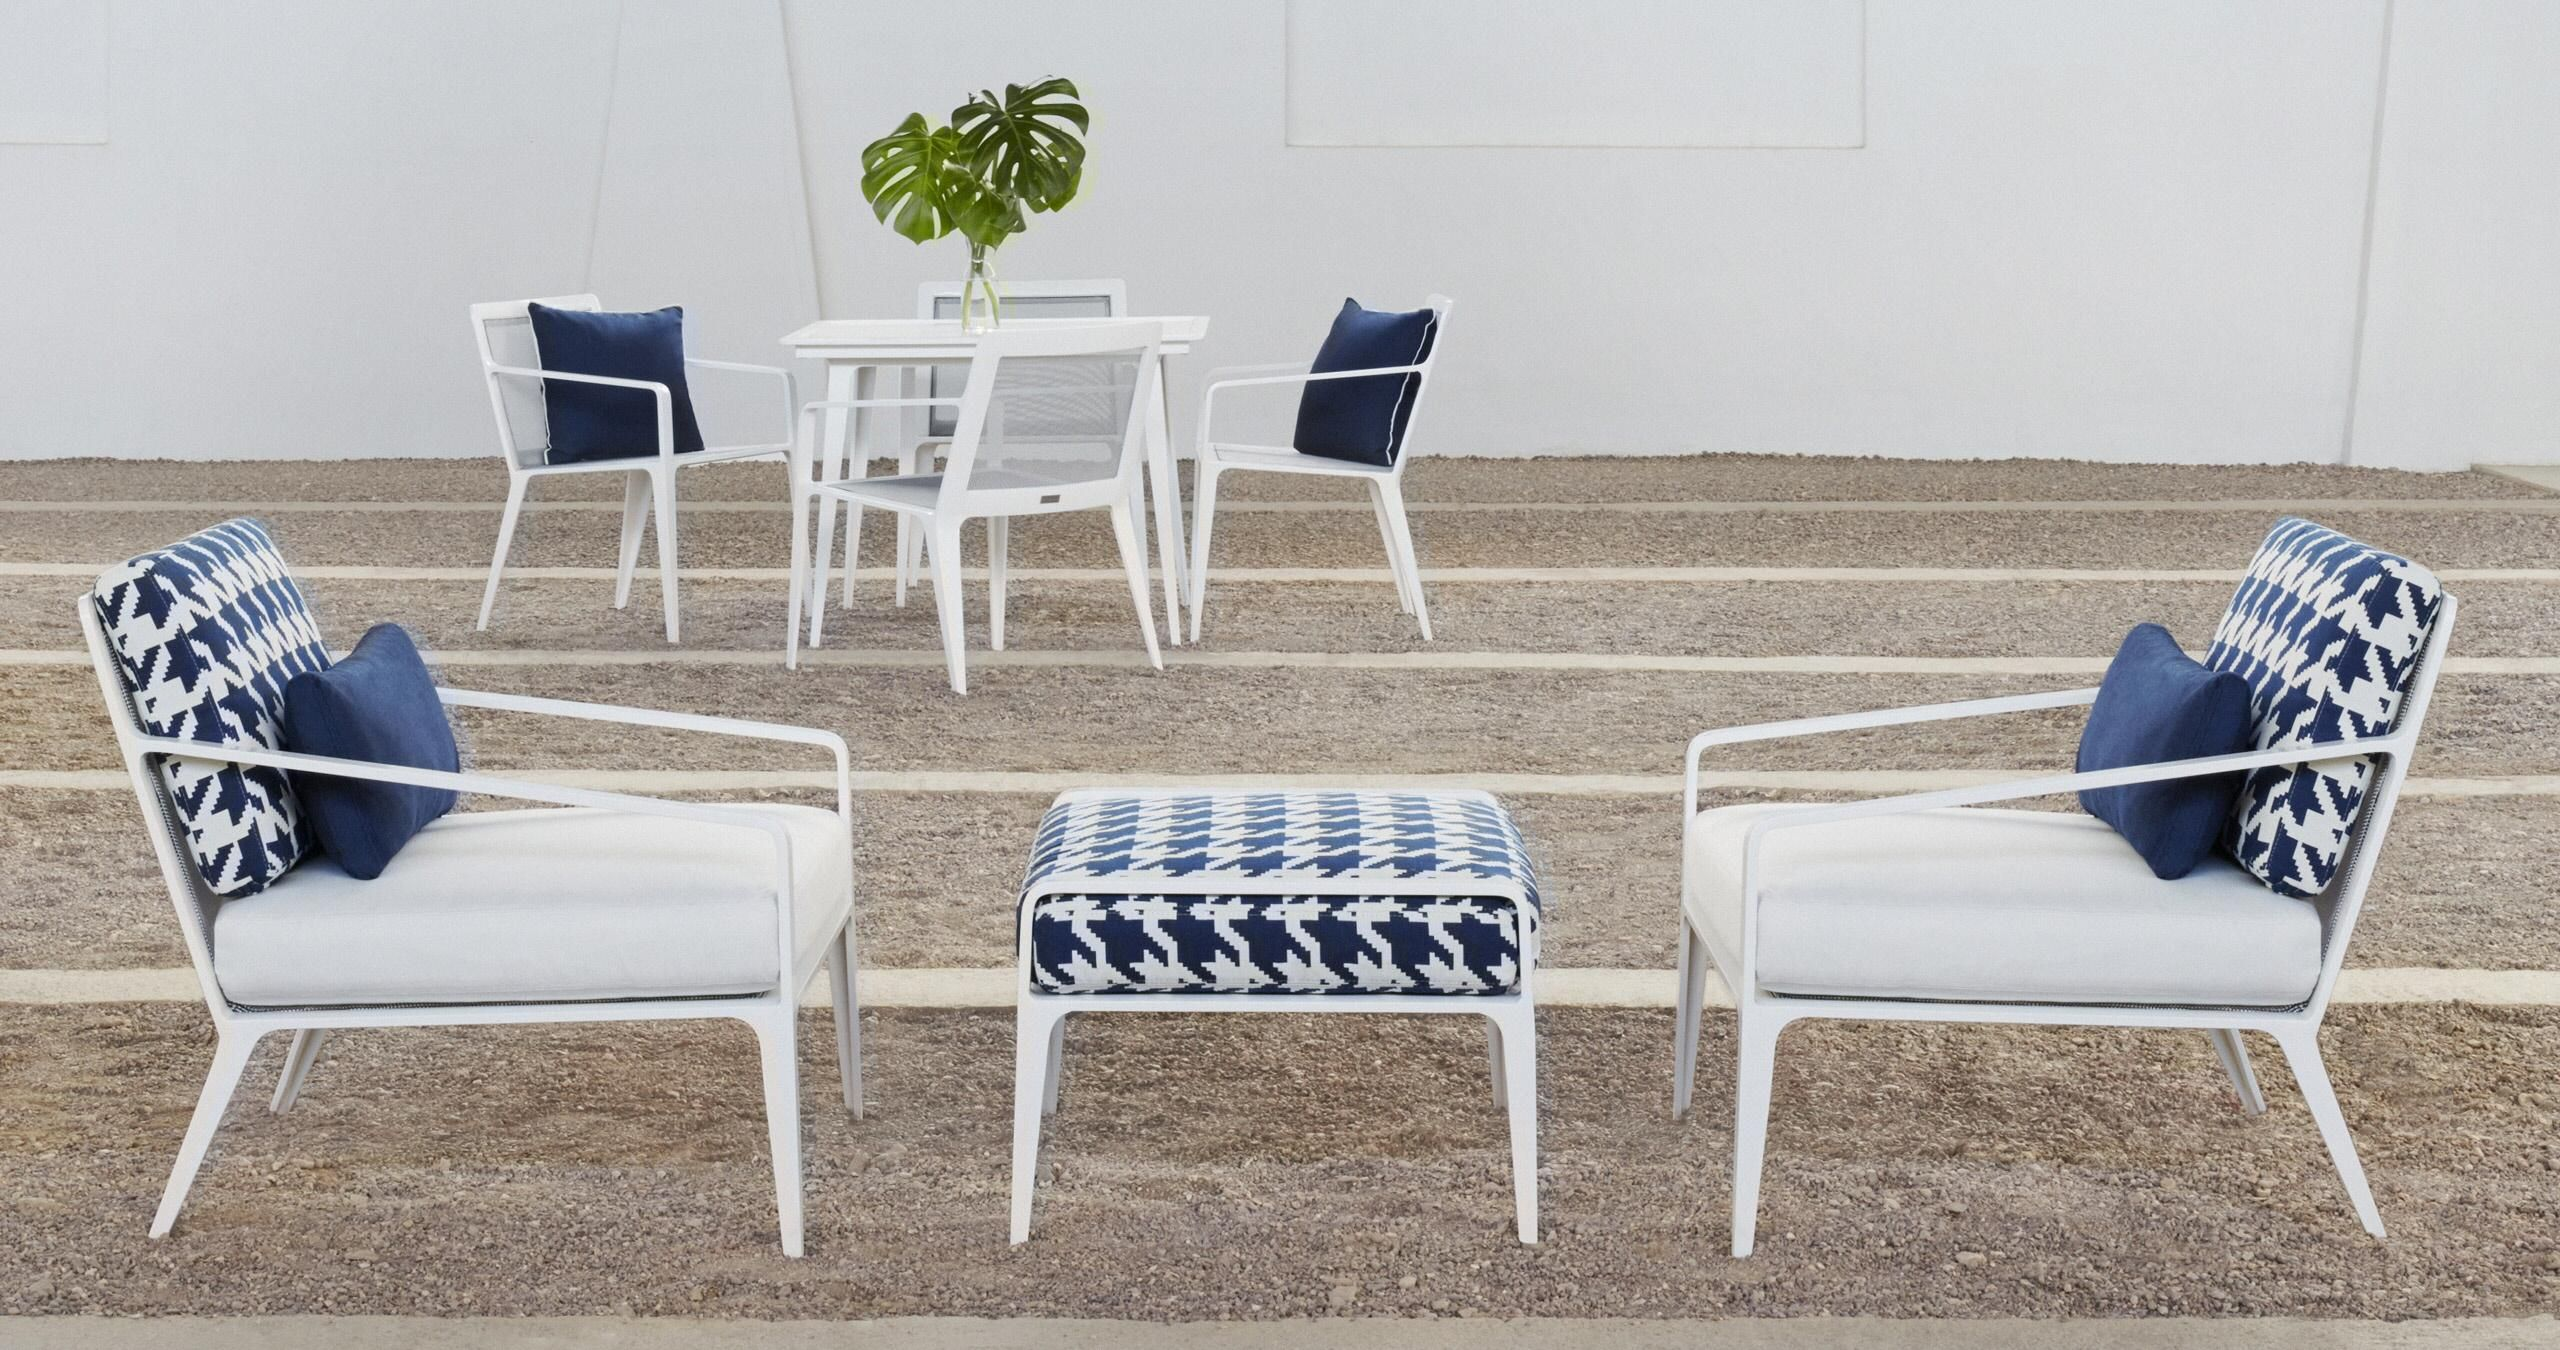 view with chaise recliners chairs preferred tubular aluminum iconic vinyl chaises outdoor lounge furniture collection within brown jordan of accent